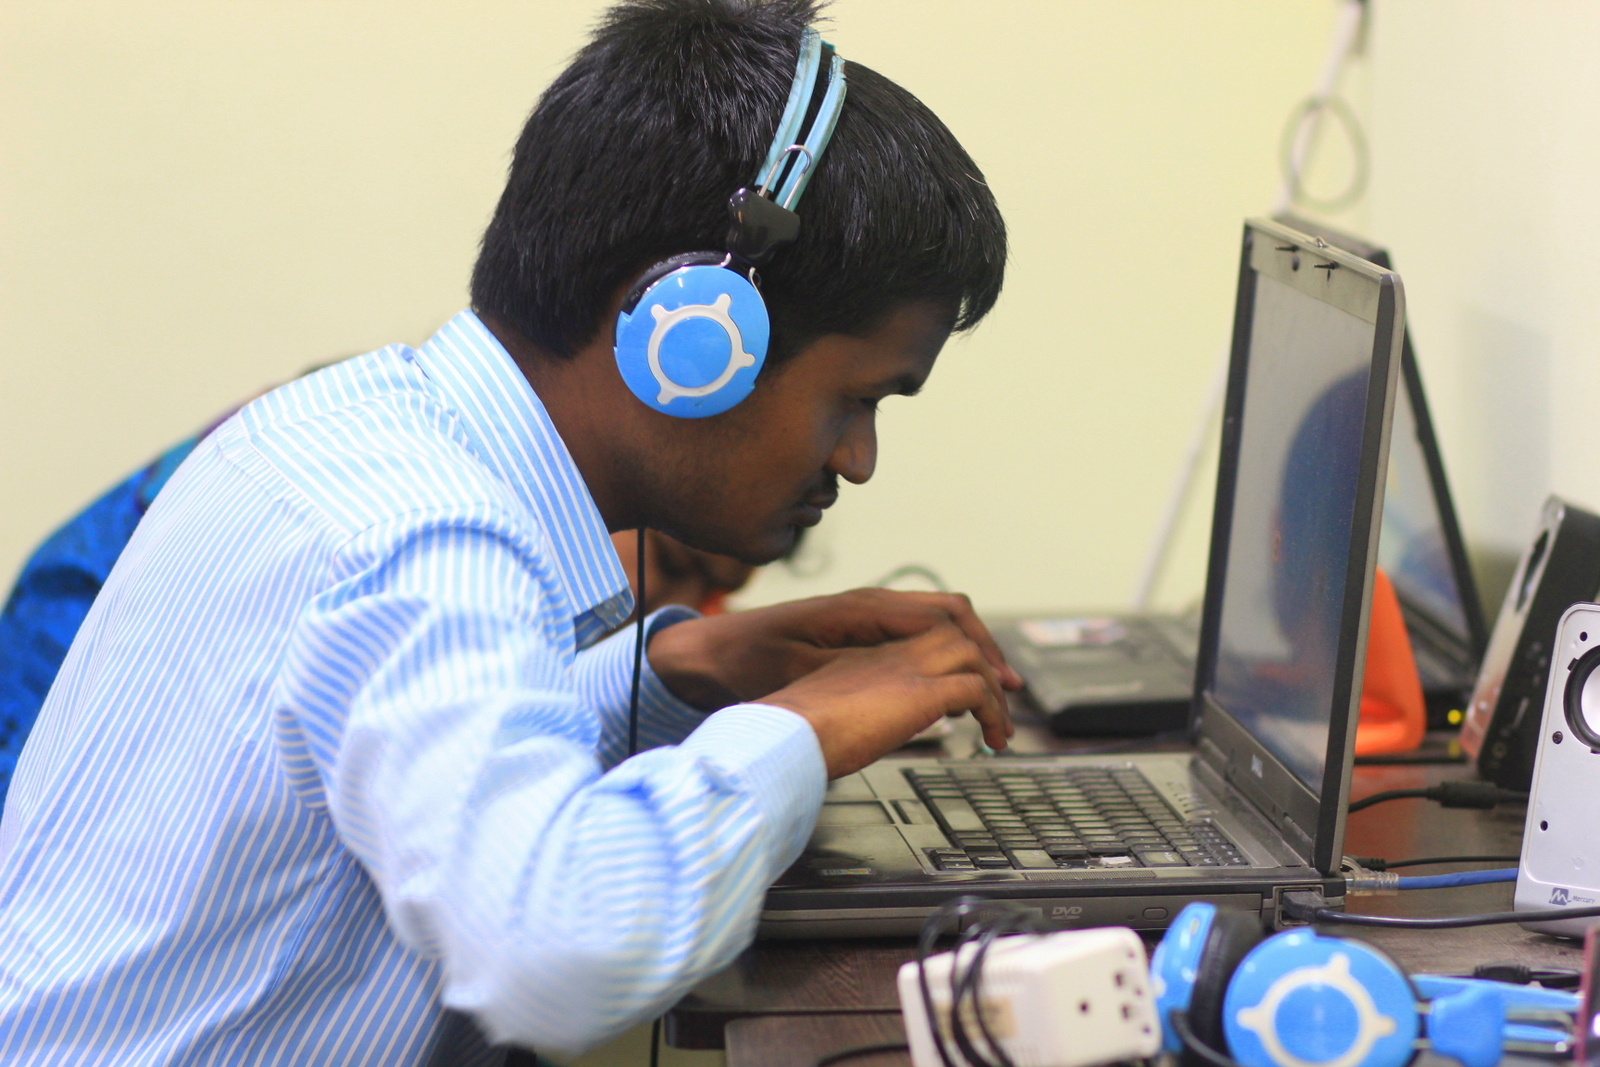 Person with vision impairment using laptop with headset